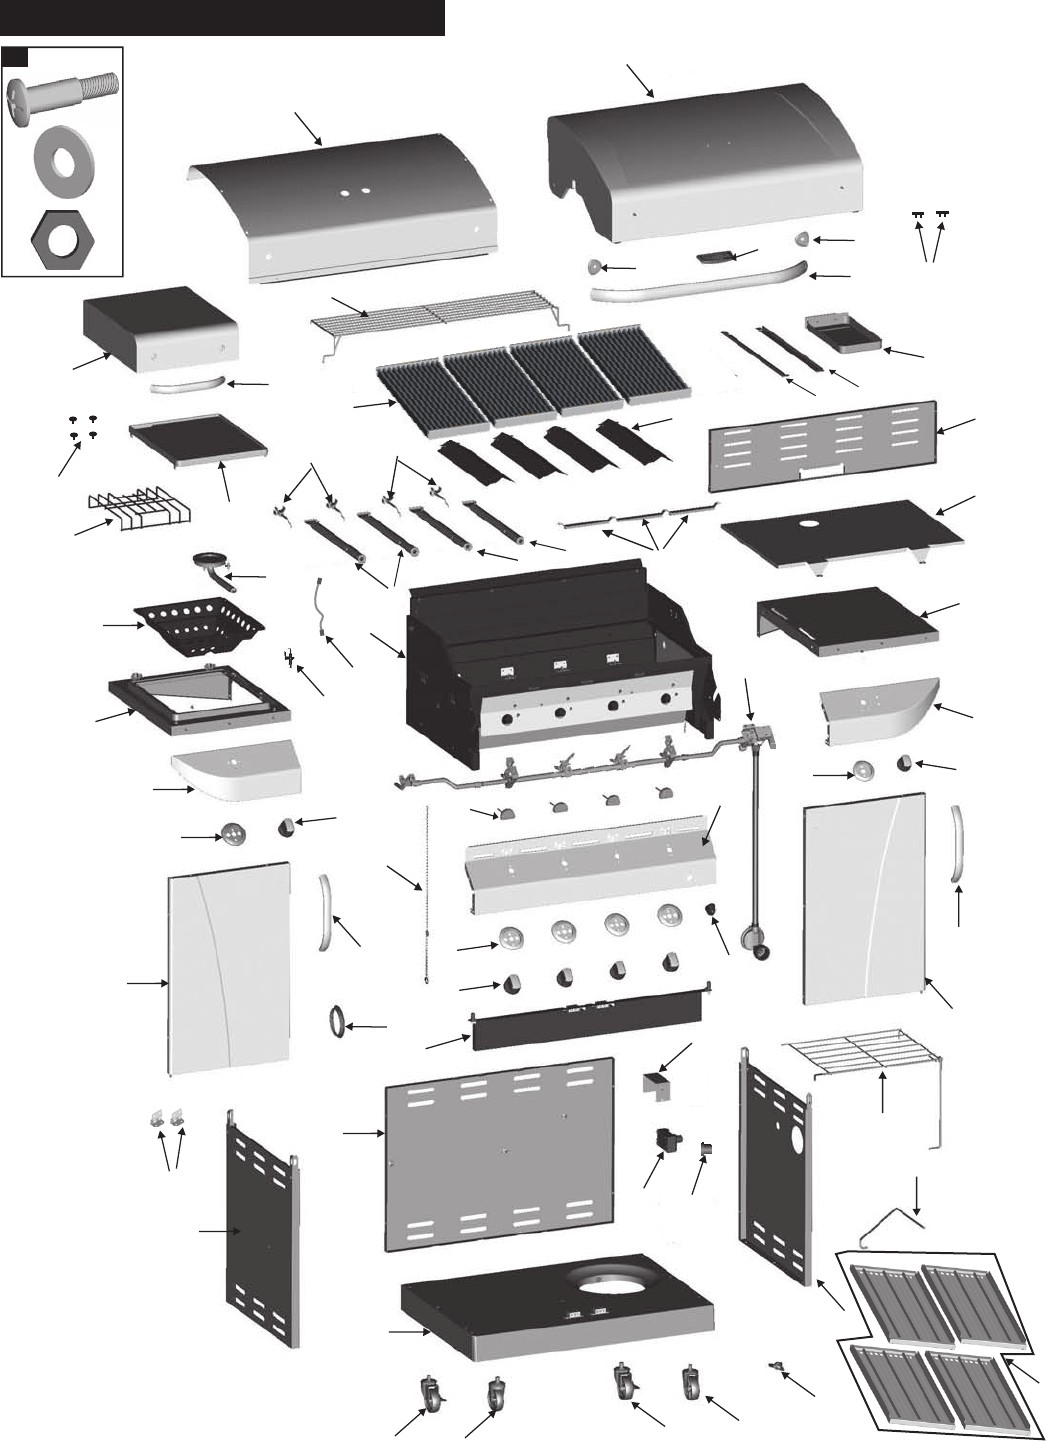 Charbroiler Pellet Grill Wiring Diagram Page 13 Of Char Broil Charcoal Grill User Guide Of Charbroiler Pellet Grill Wiring Diagram